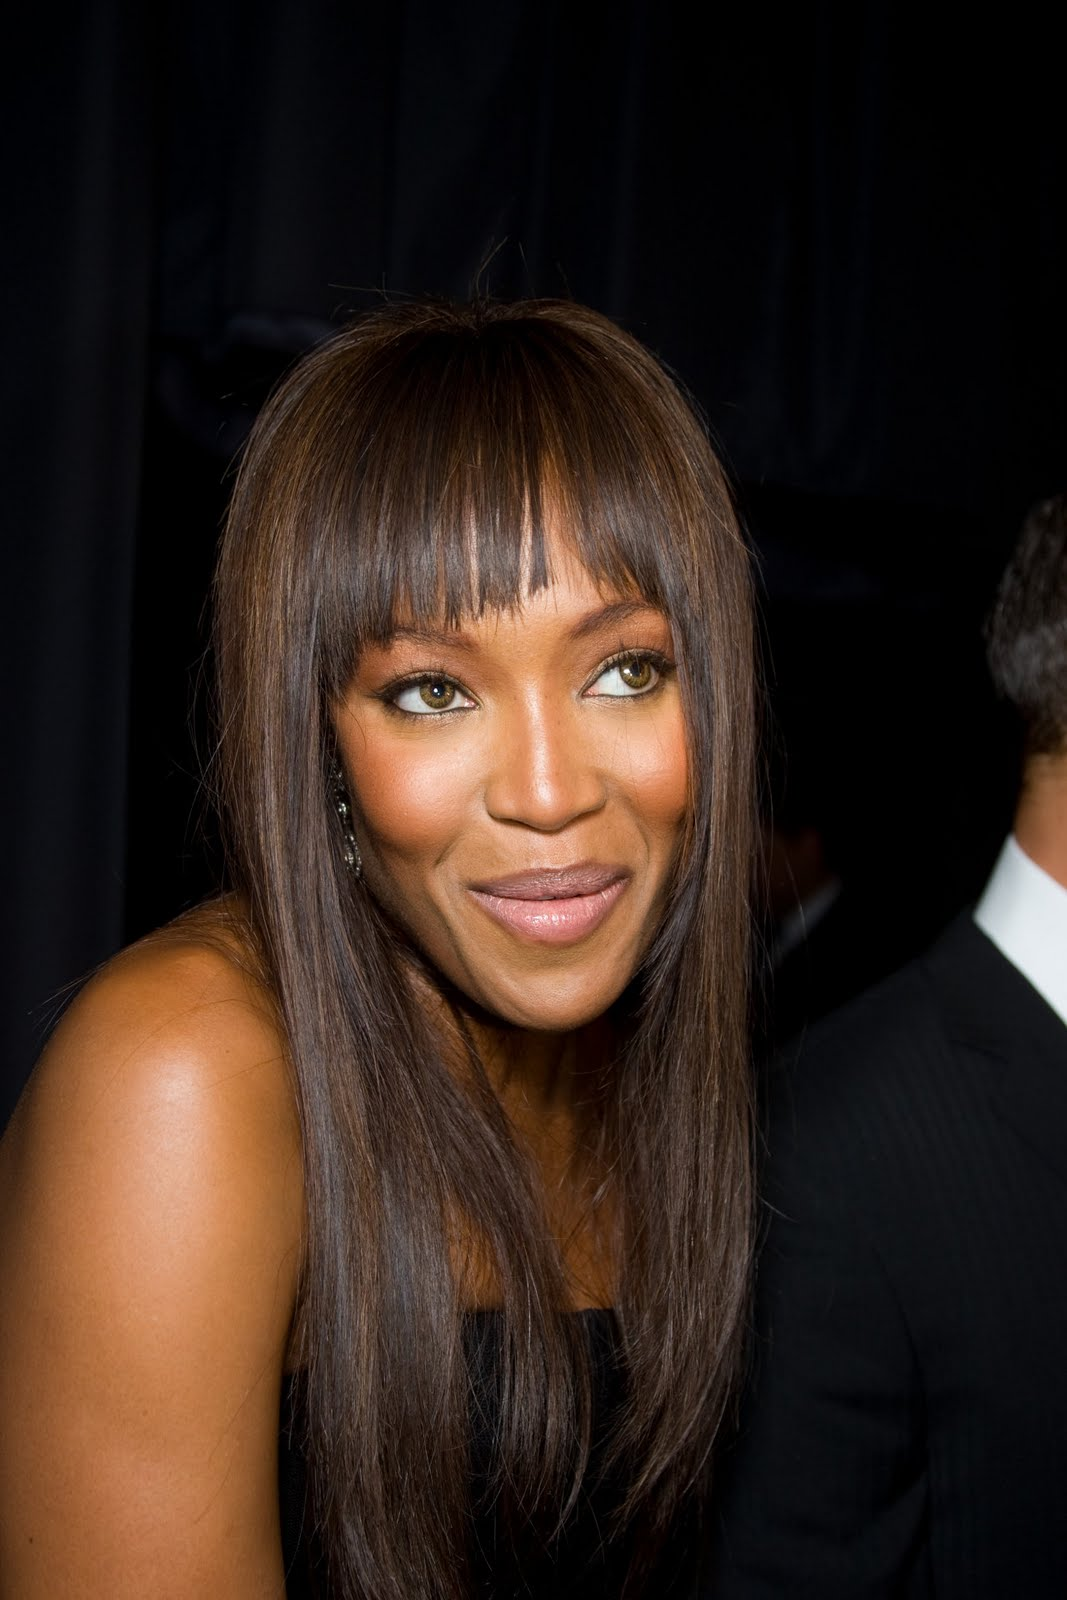 Hot Hollywood Actress Naomi Campbell Hot Pictures Pics Photos